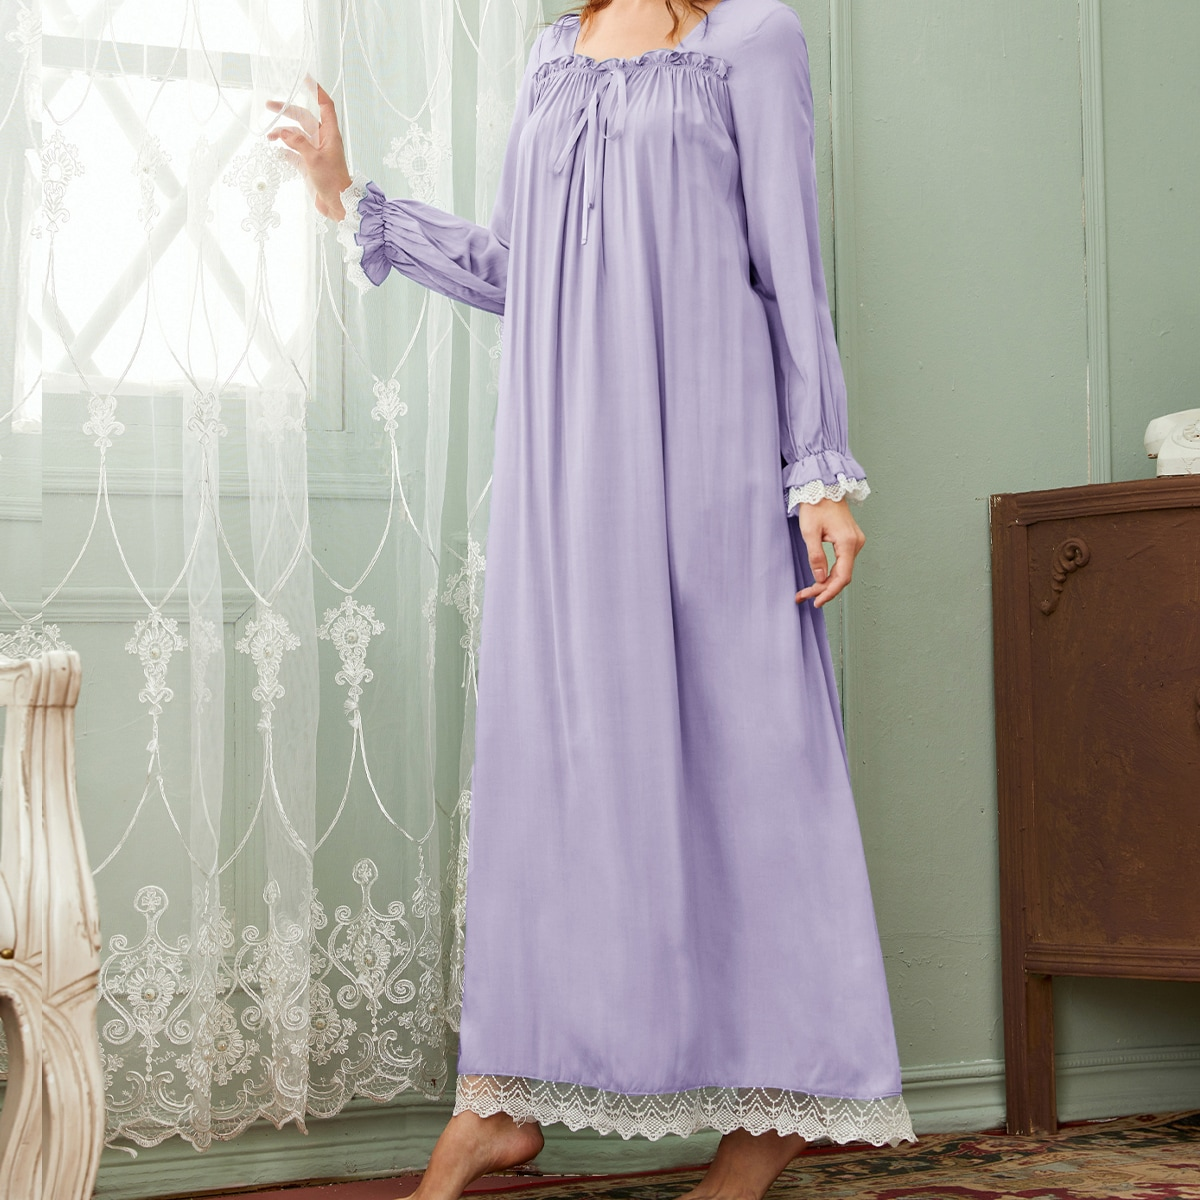 Tie Front Lace Trim Frill Night Dress